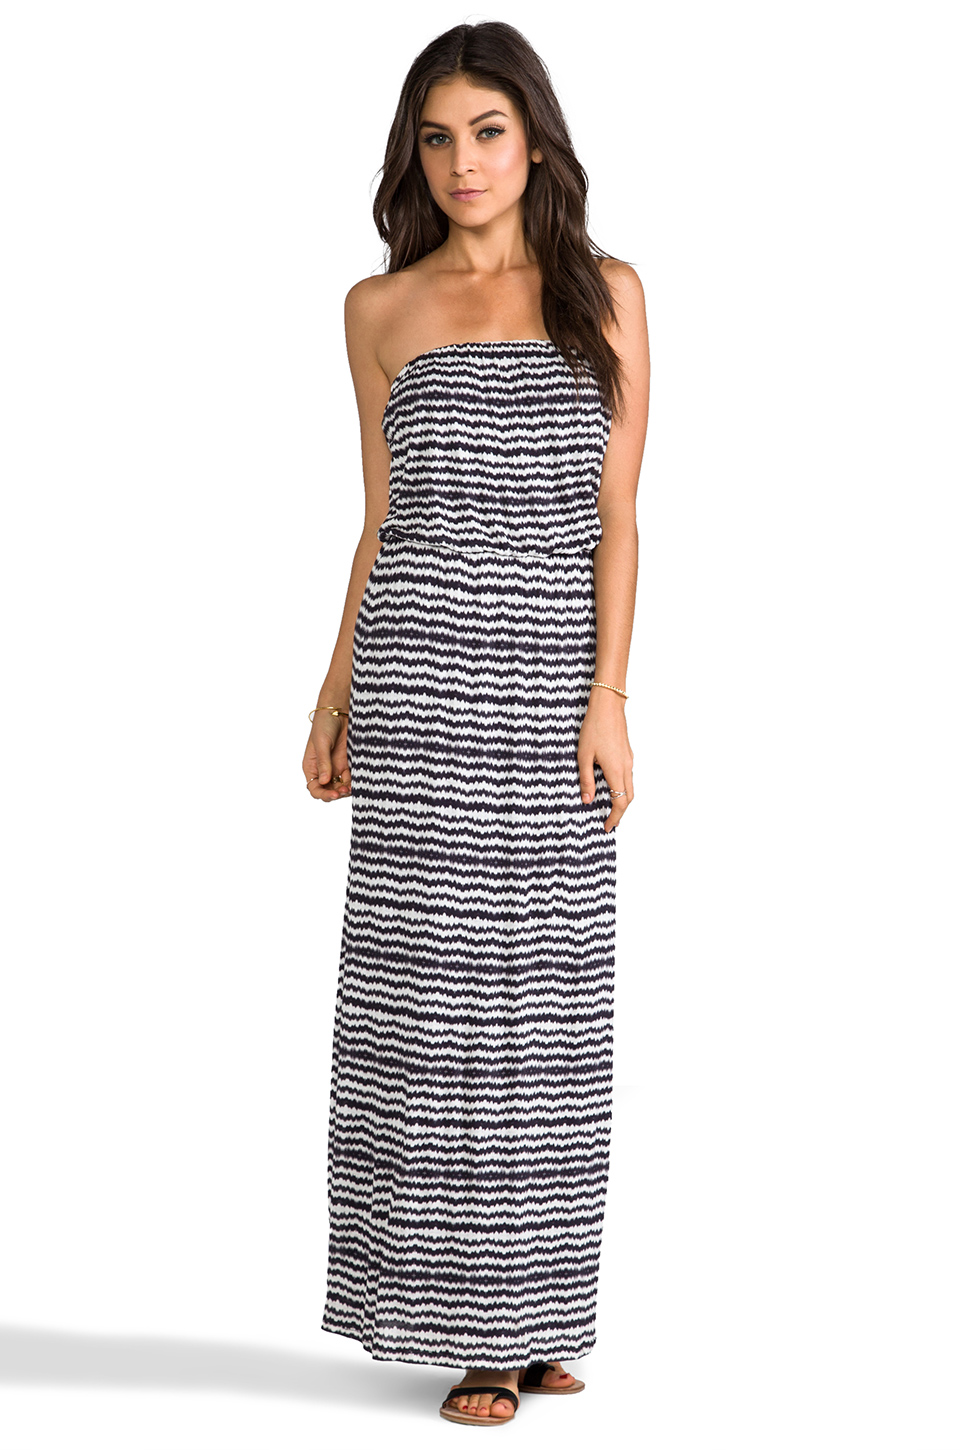 Velvet by Graham & Spencer Velvet Aztec Stripe Glory Dress in Black | REVOLVE